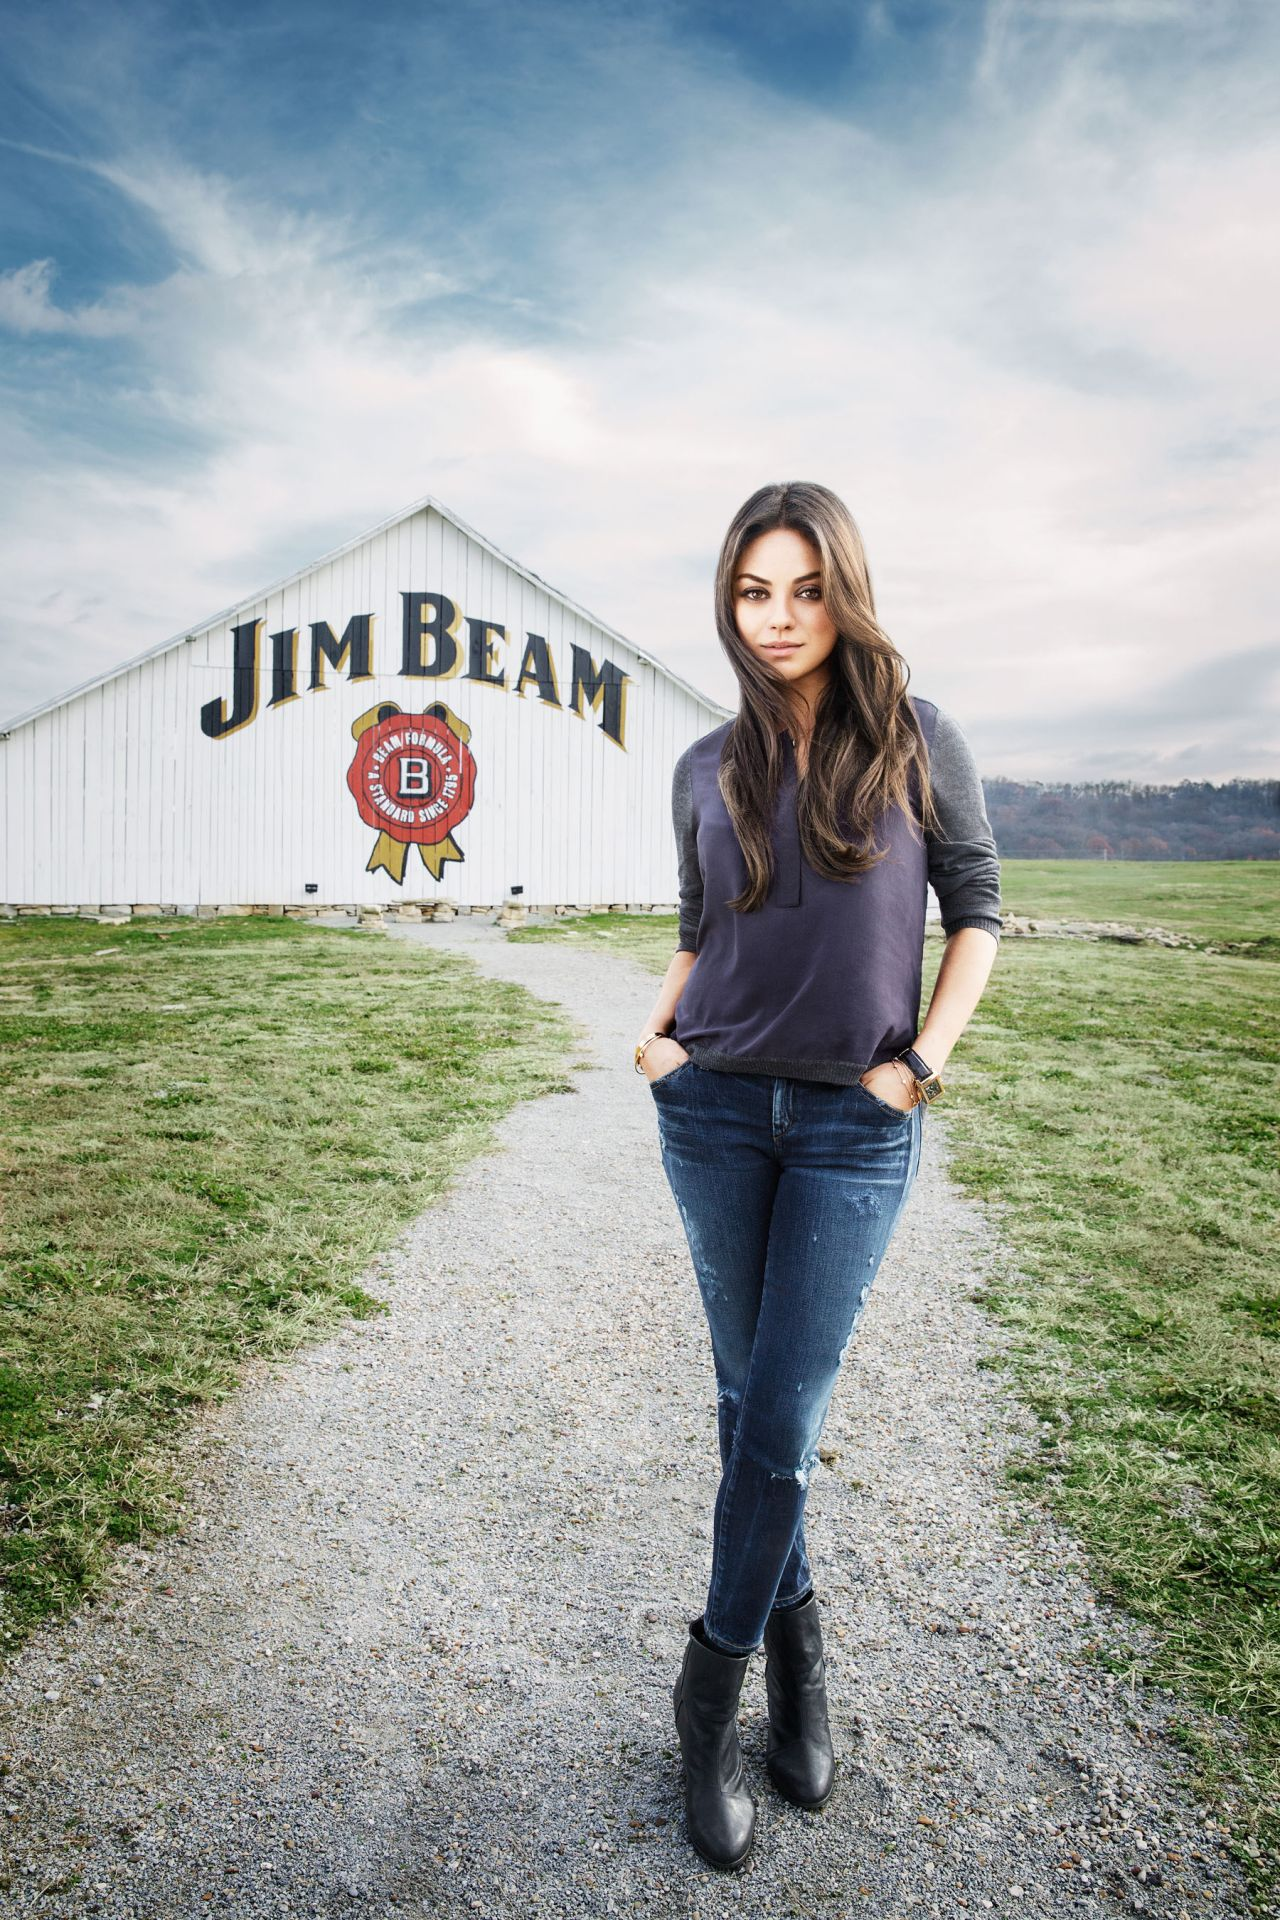 Mila Kunis - Jim Beam Promo Photo